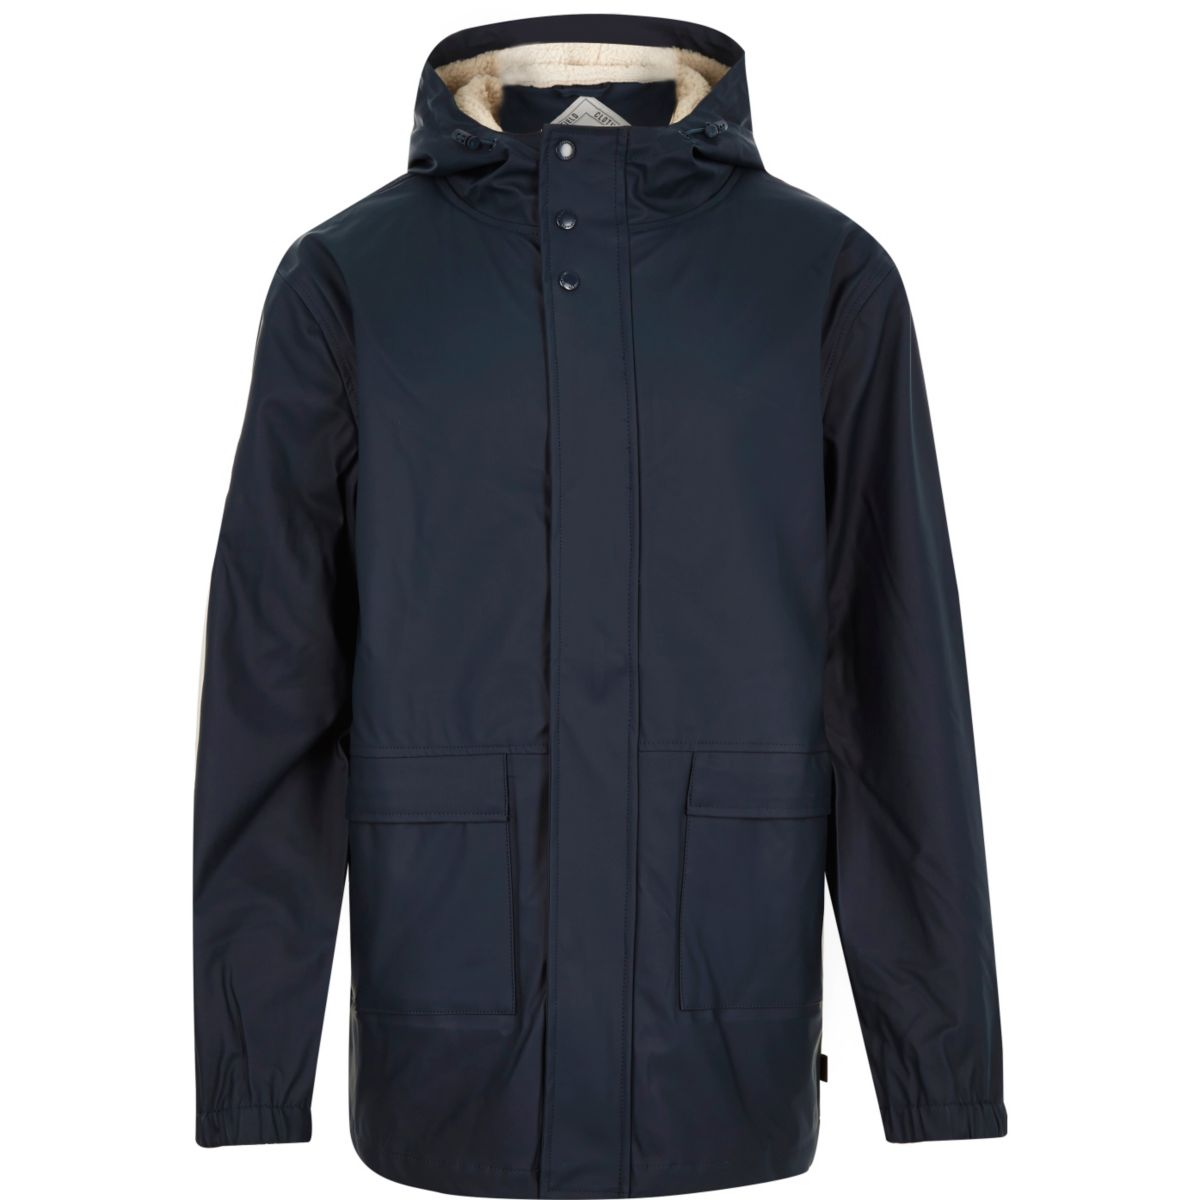 Navy Bellfield waterproof parka winter coat